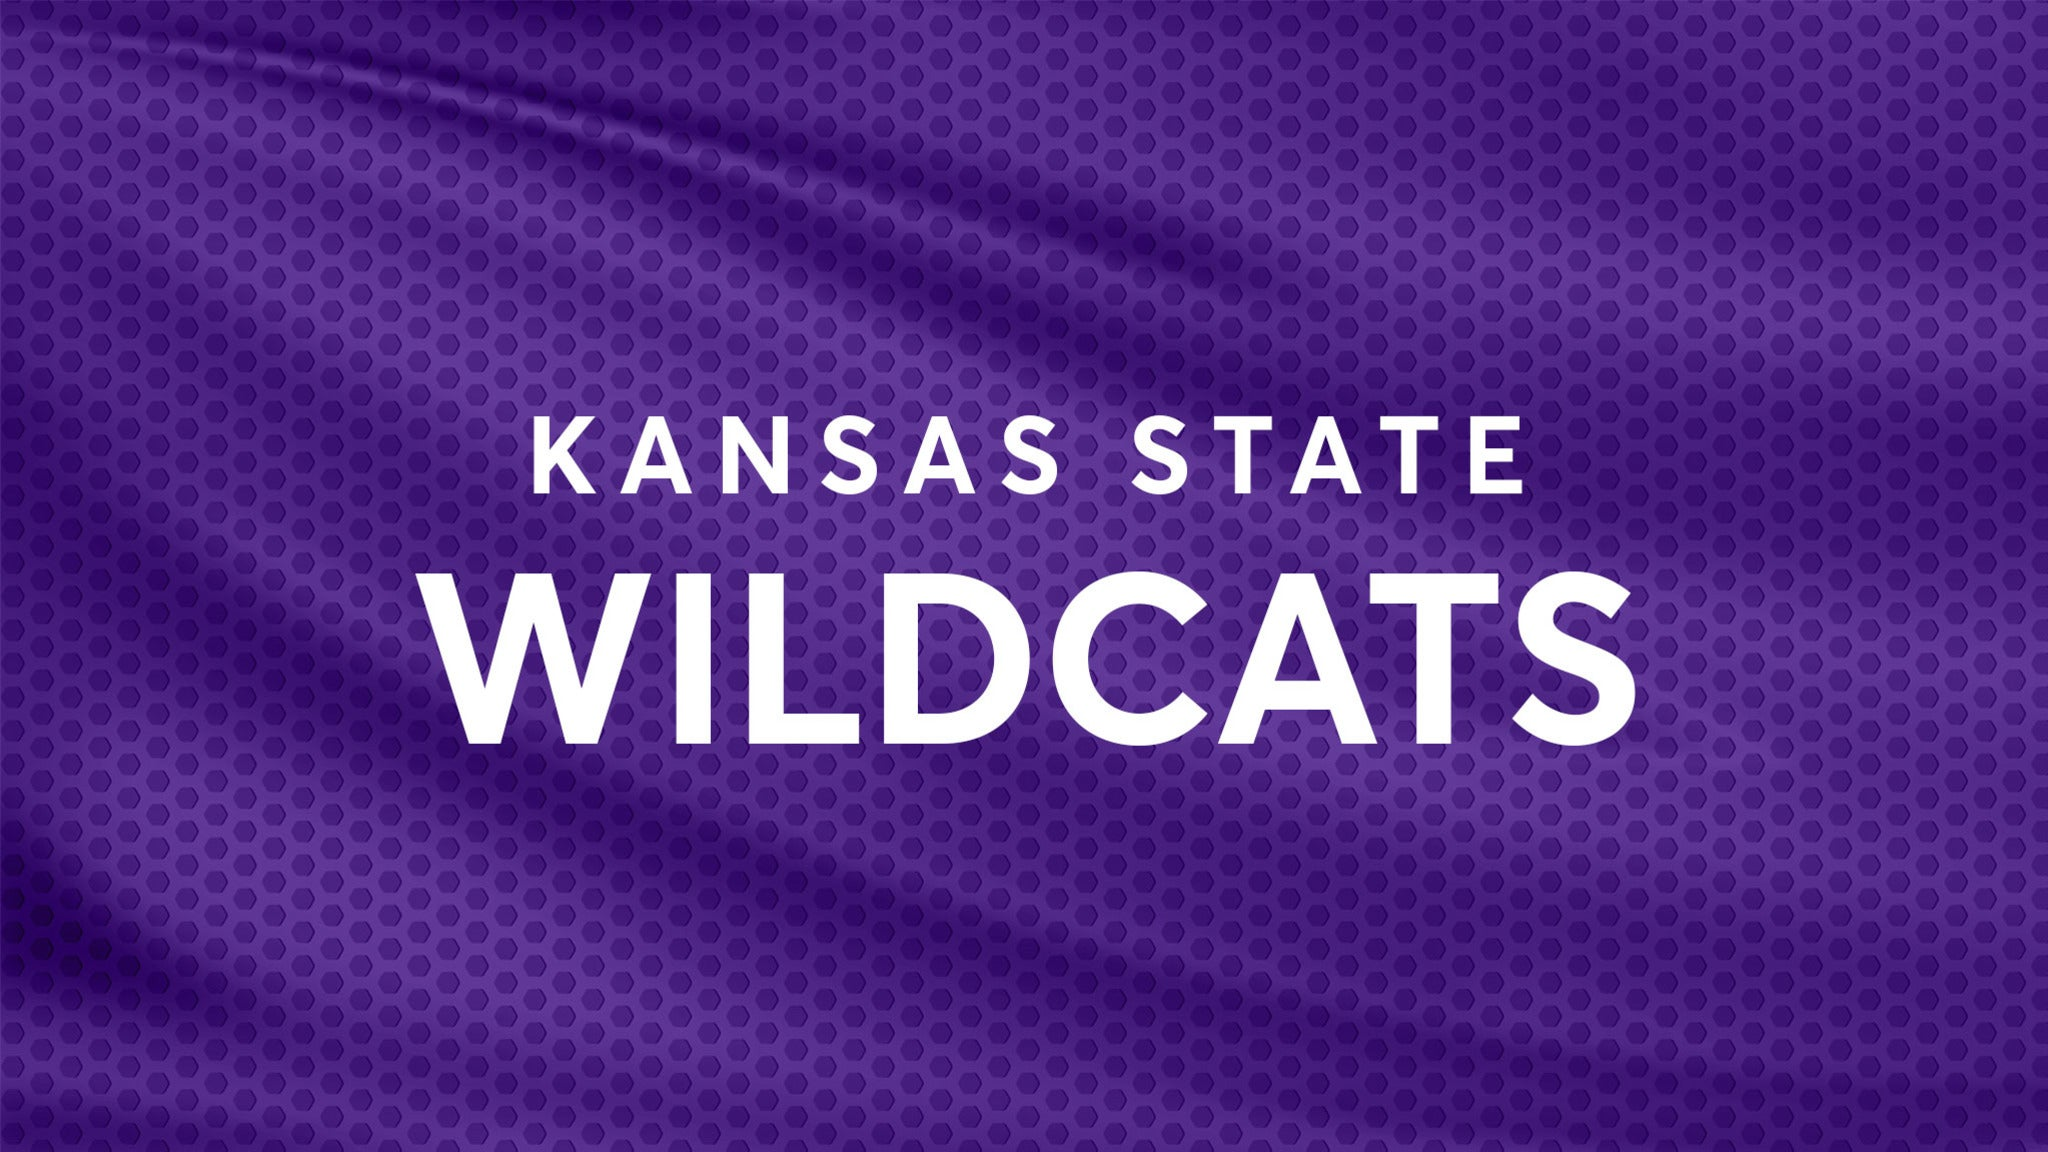 Kansas State Wildcats Mens Basketball